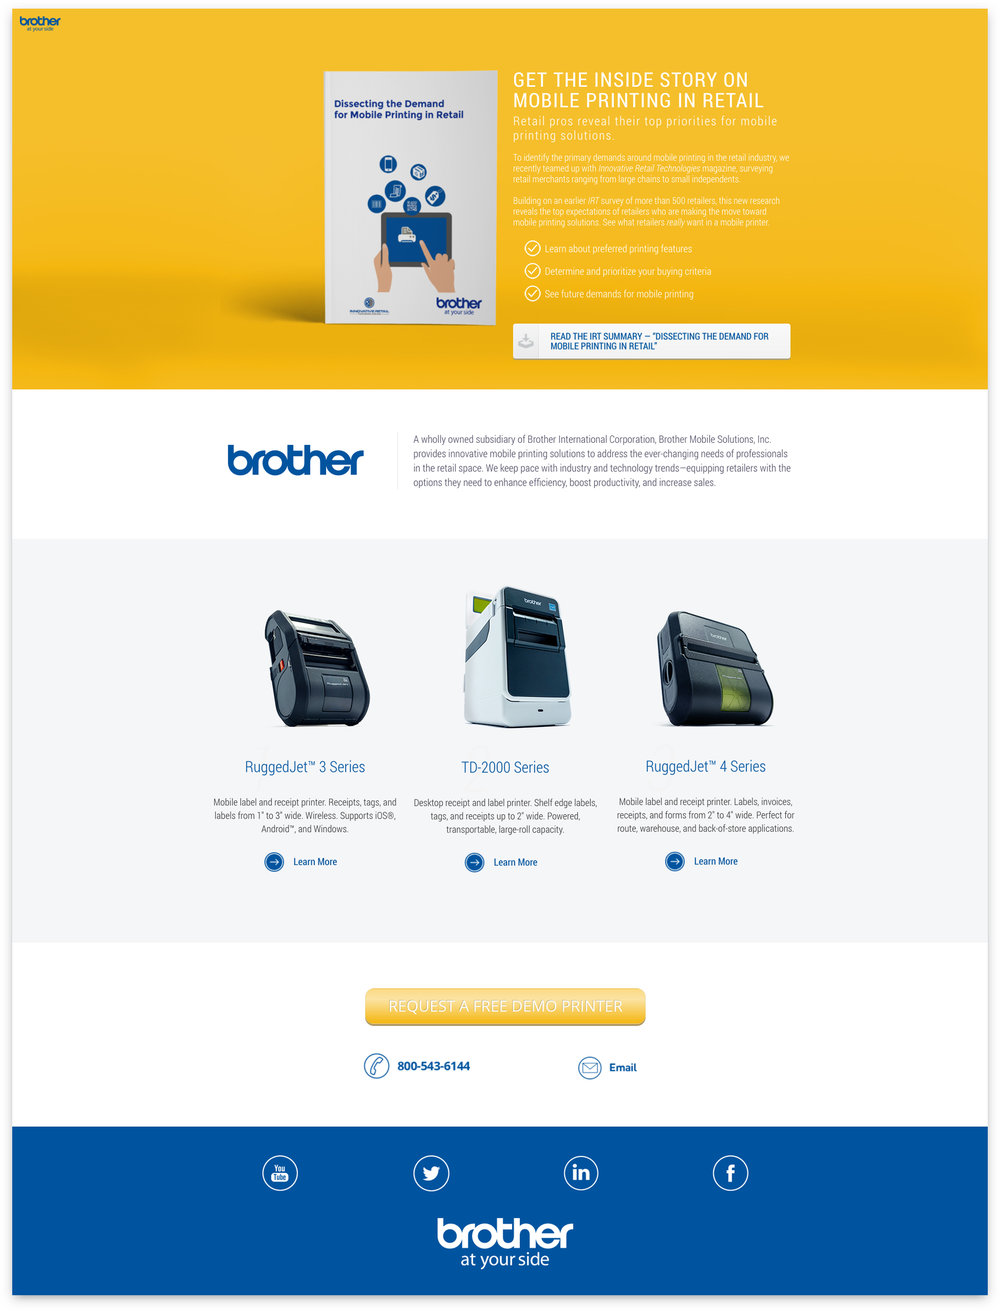 Brother Mobile Solutions: IRT LP